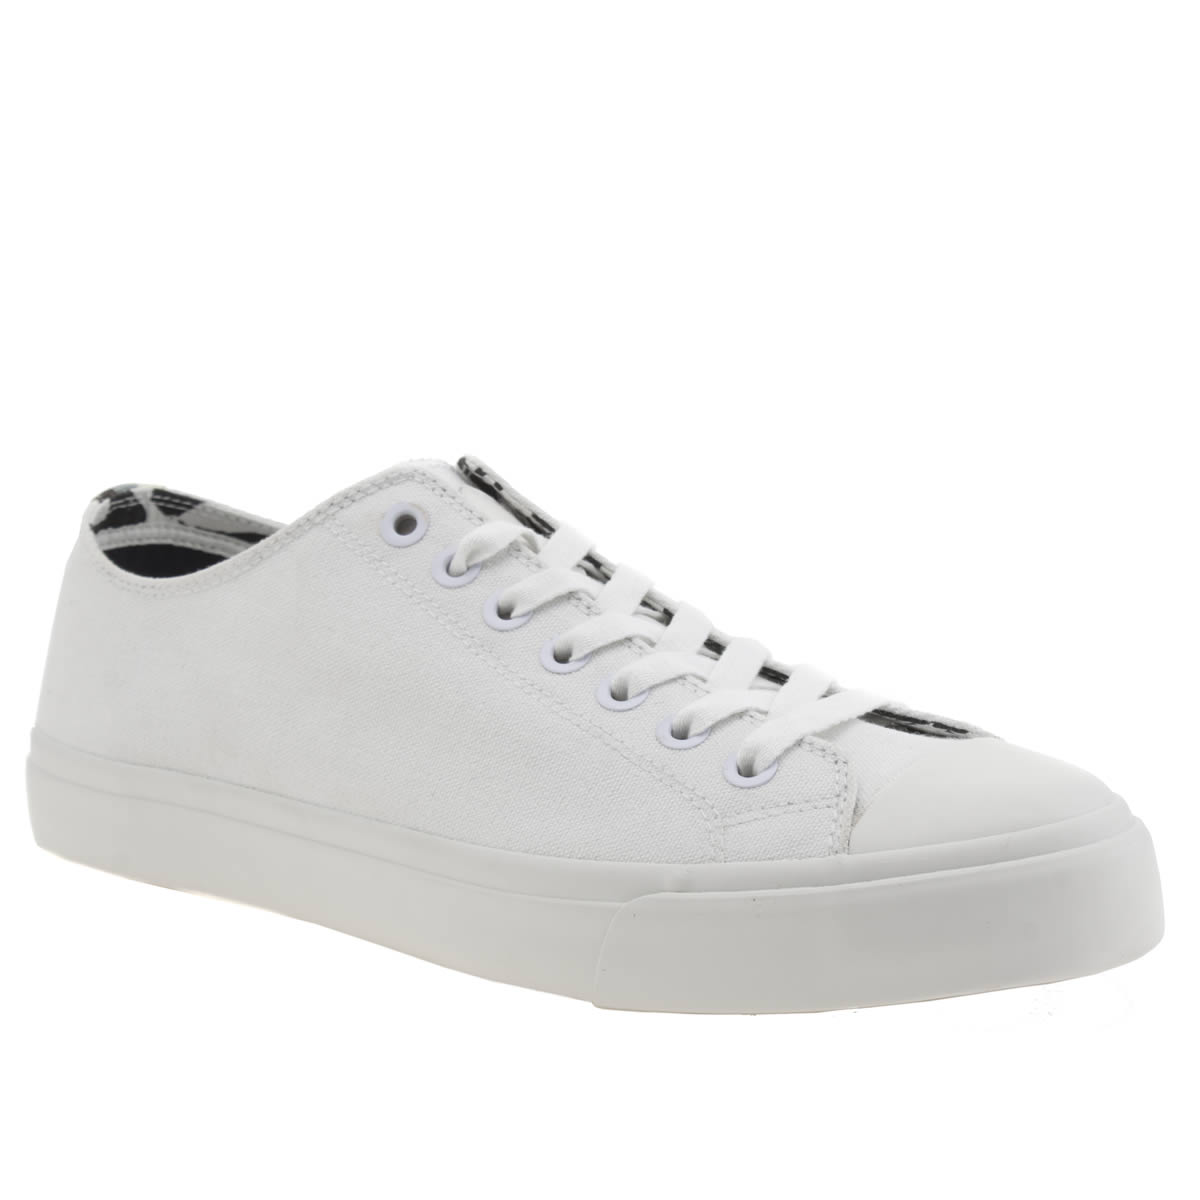 Paul Smith Shoes Paul Smith Shoes White Indie Trainers